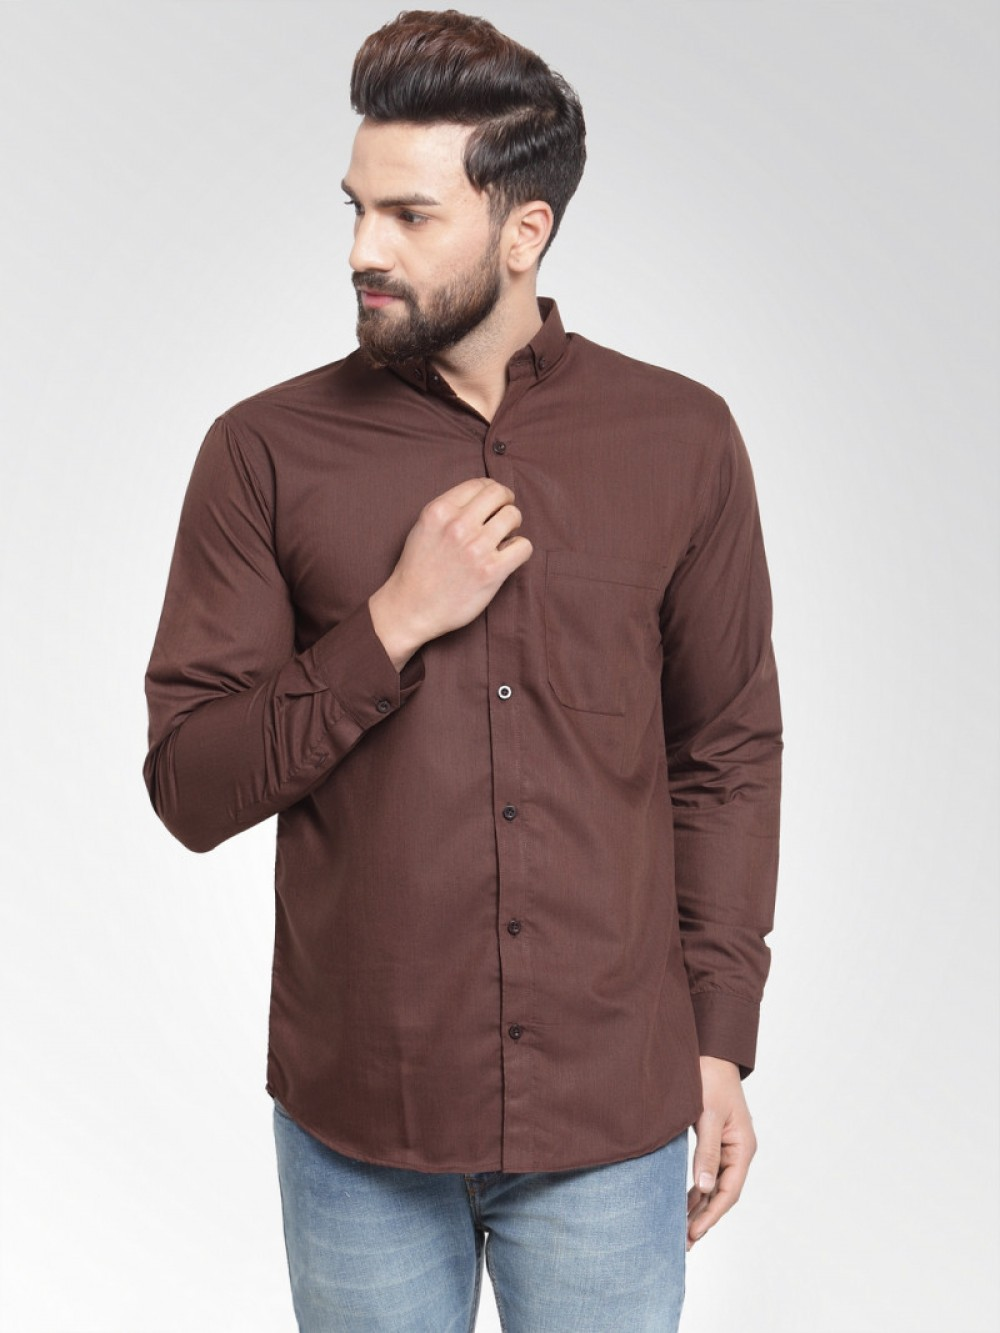 Formal Look Coffee Color Wear Shirt